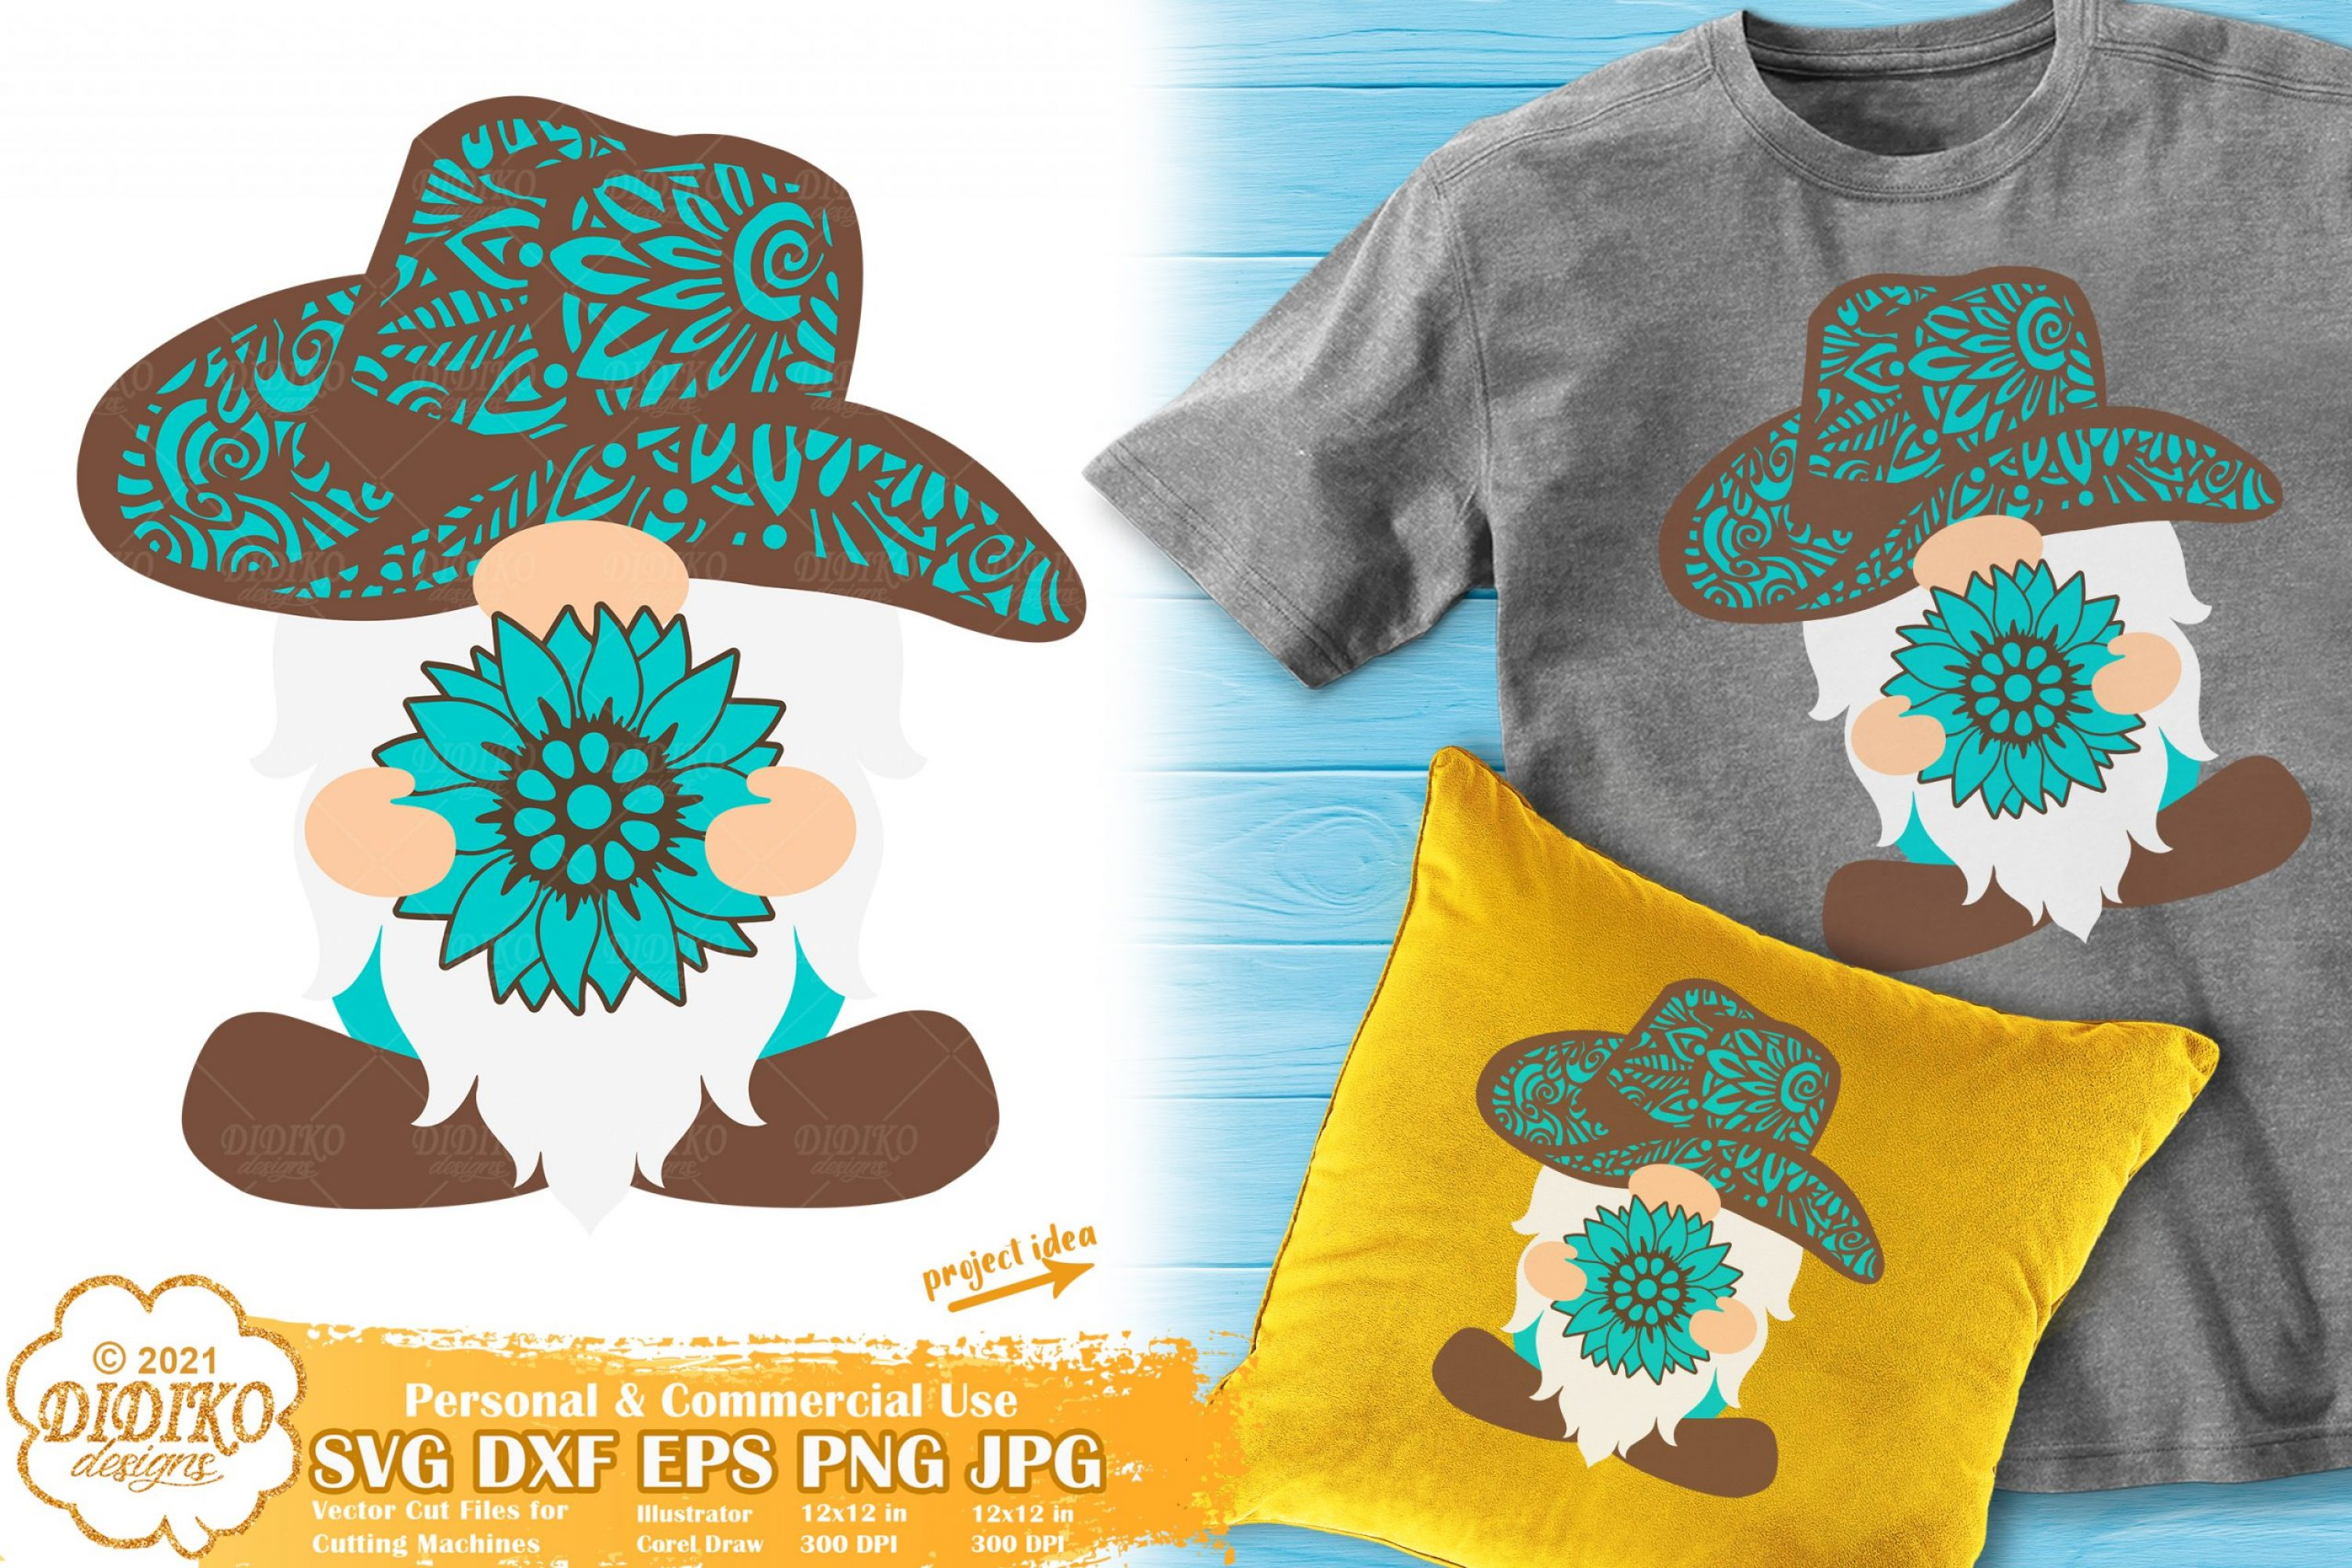 Sunflower Gnome SVG, Western Svg, Zentangle Svg